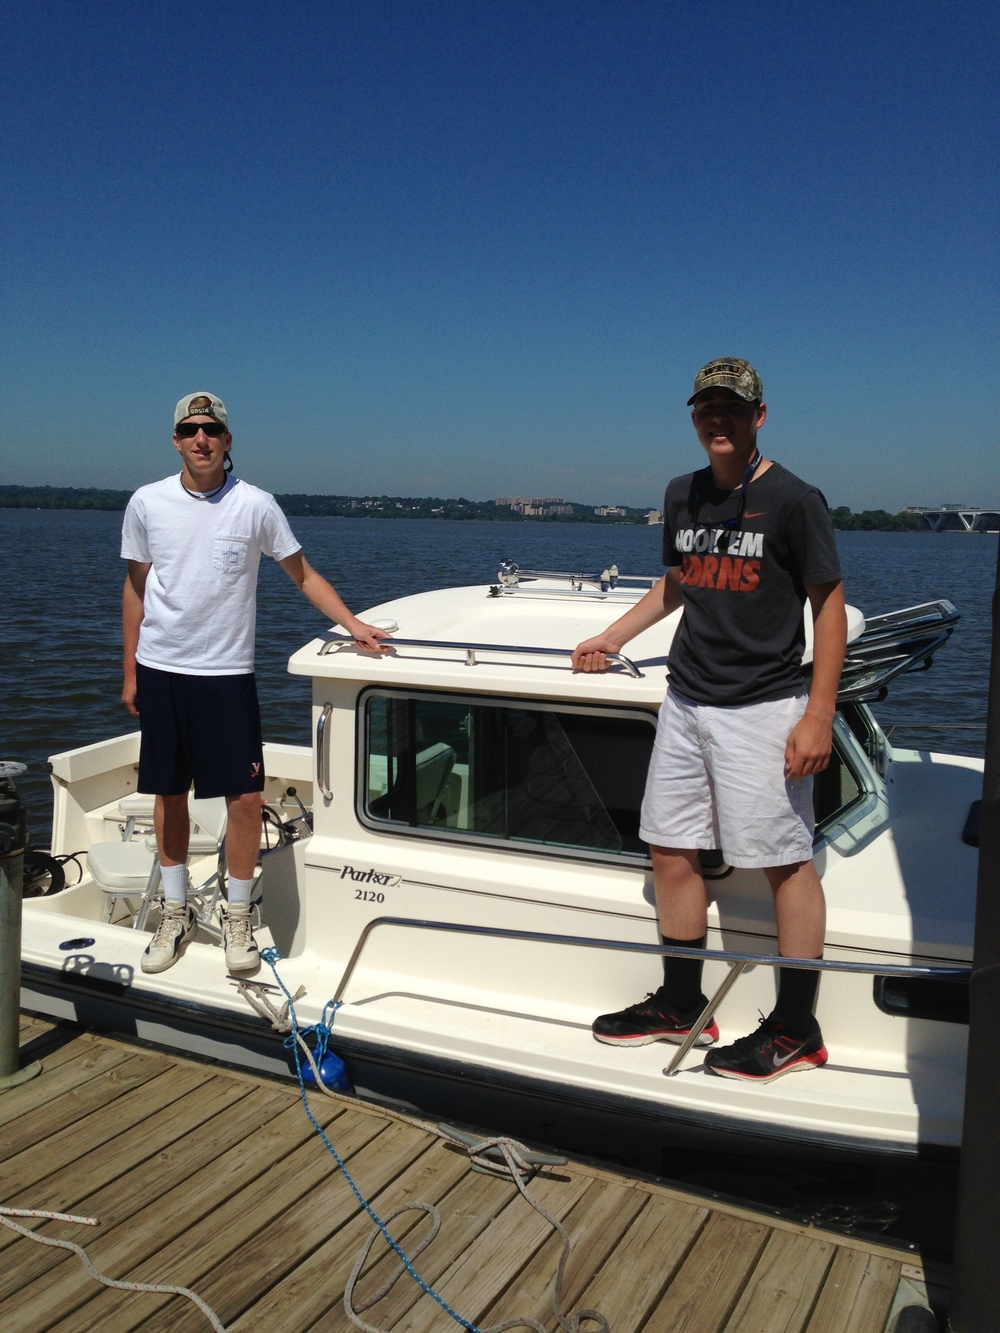 colin and greg on boat.JPG